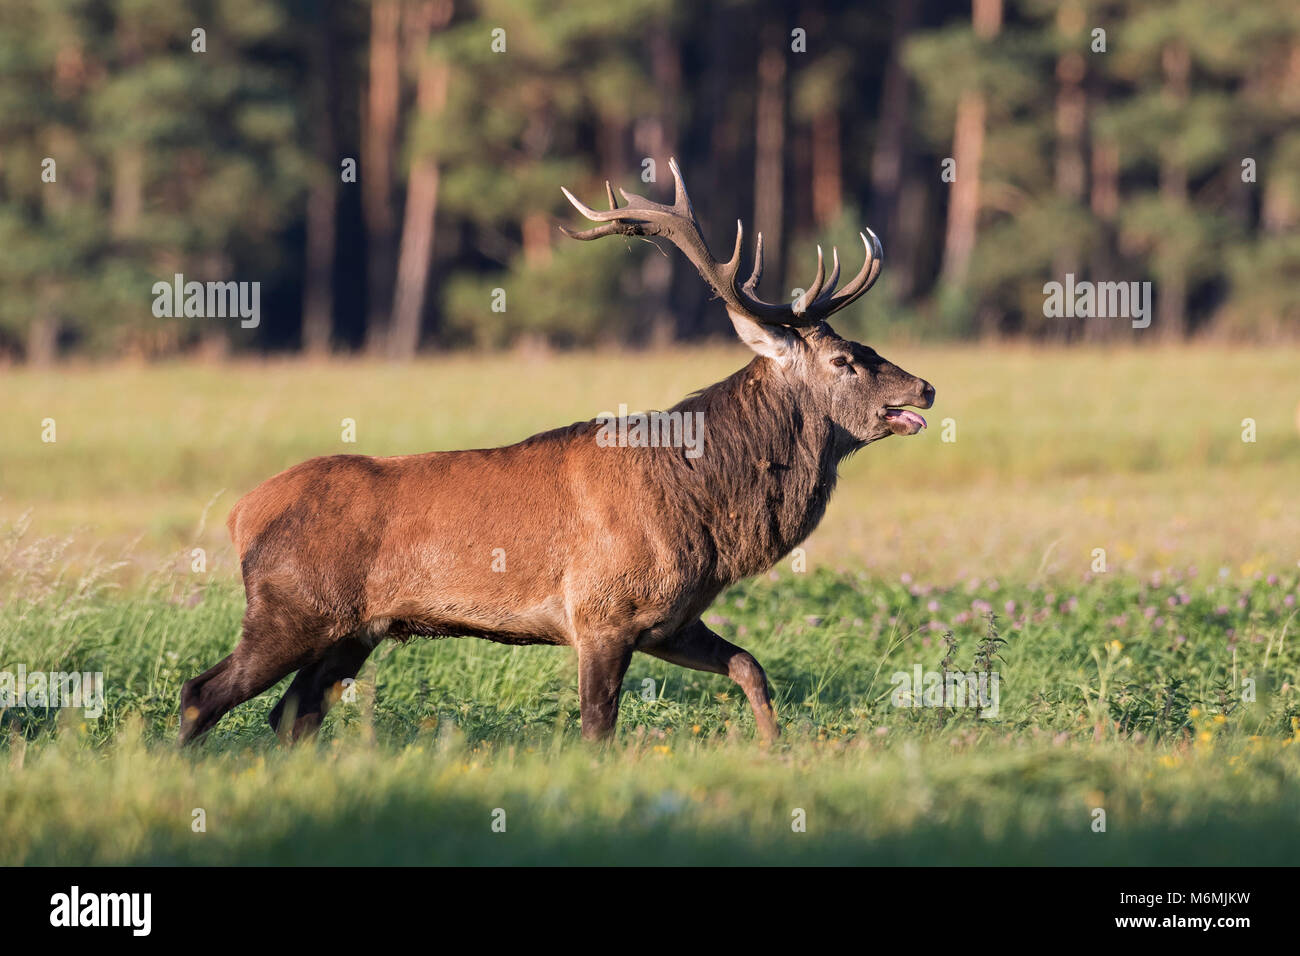 Red deer (Cervus elaphus) stag in field at forest 's edge checking out does / females in heat by flicking tongue - Stock Image